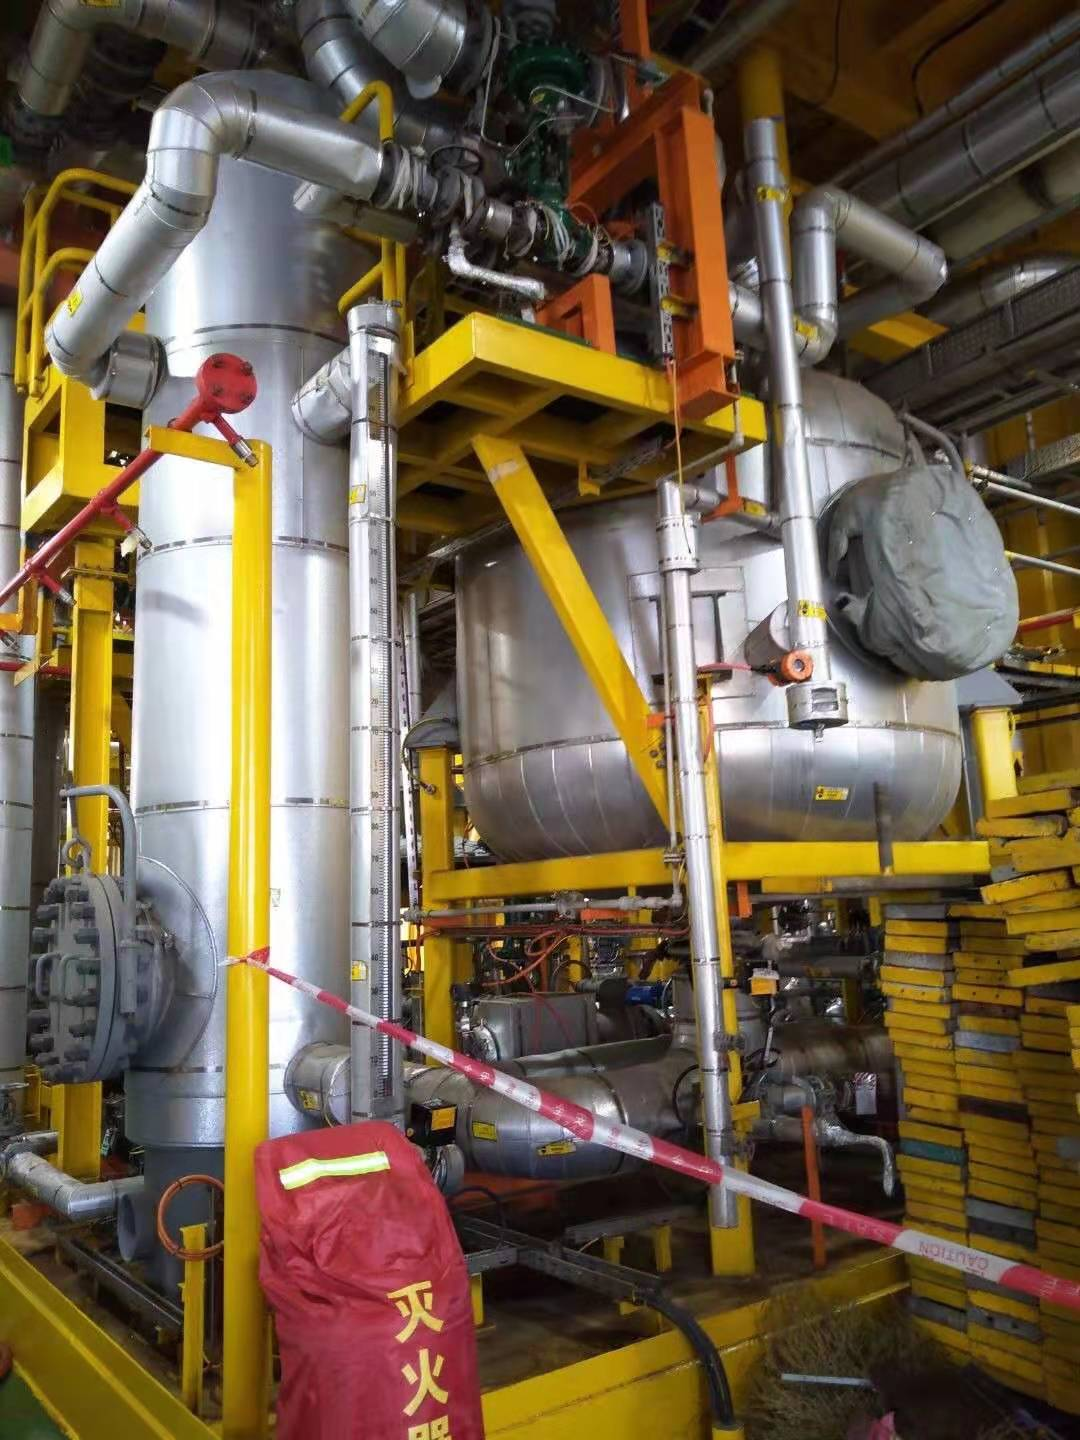 CNOOC approves Stauper´s CFUs at Caofeidian Oil Field Development Project. The single stage CFUs package is a Greenfield installation and is removing over 90% of oil in water using no flocculants in the process. Oil in water into CFU is 500 ppm, outlet is stable at below 35 ppm.